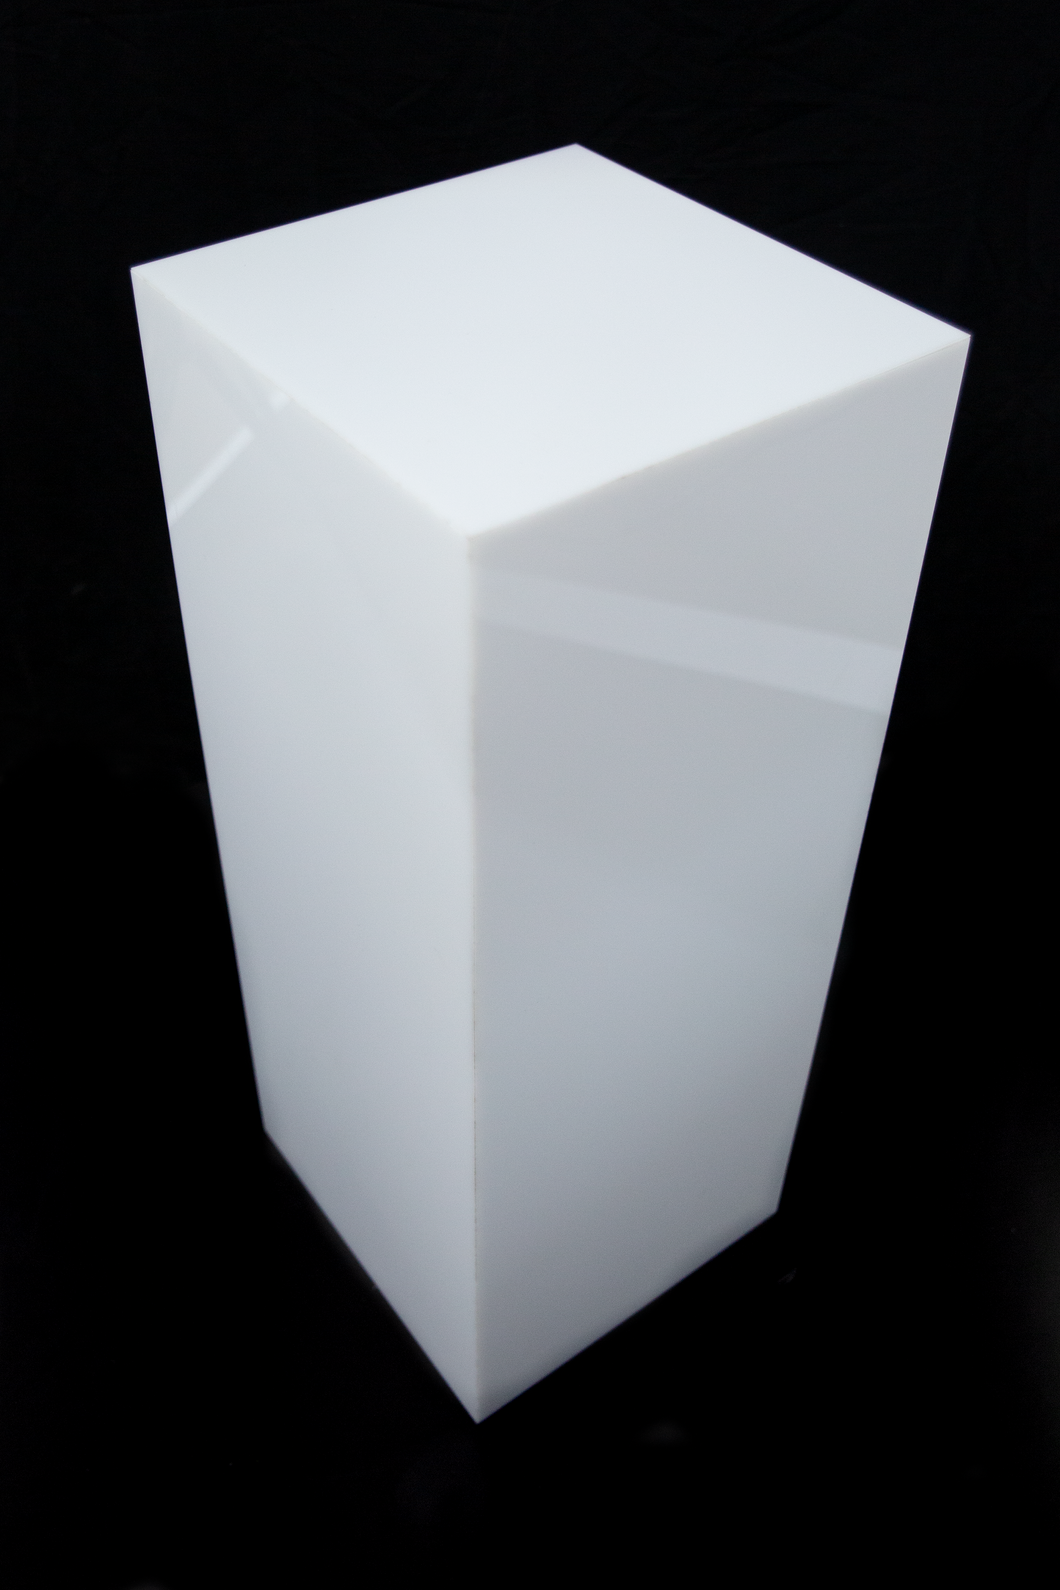 Used Square White Plinth - 12